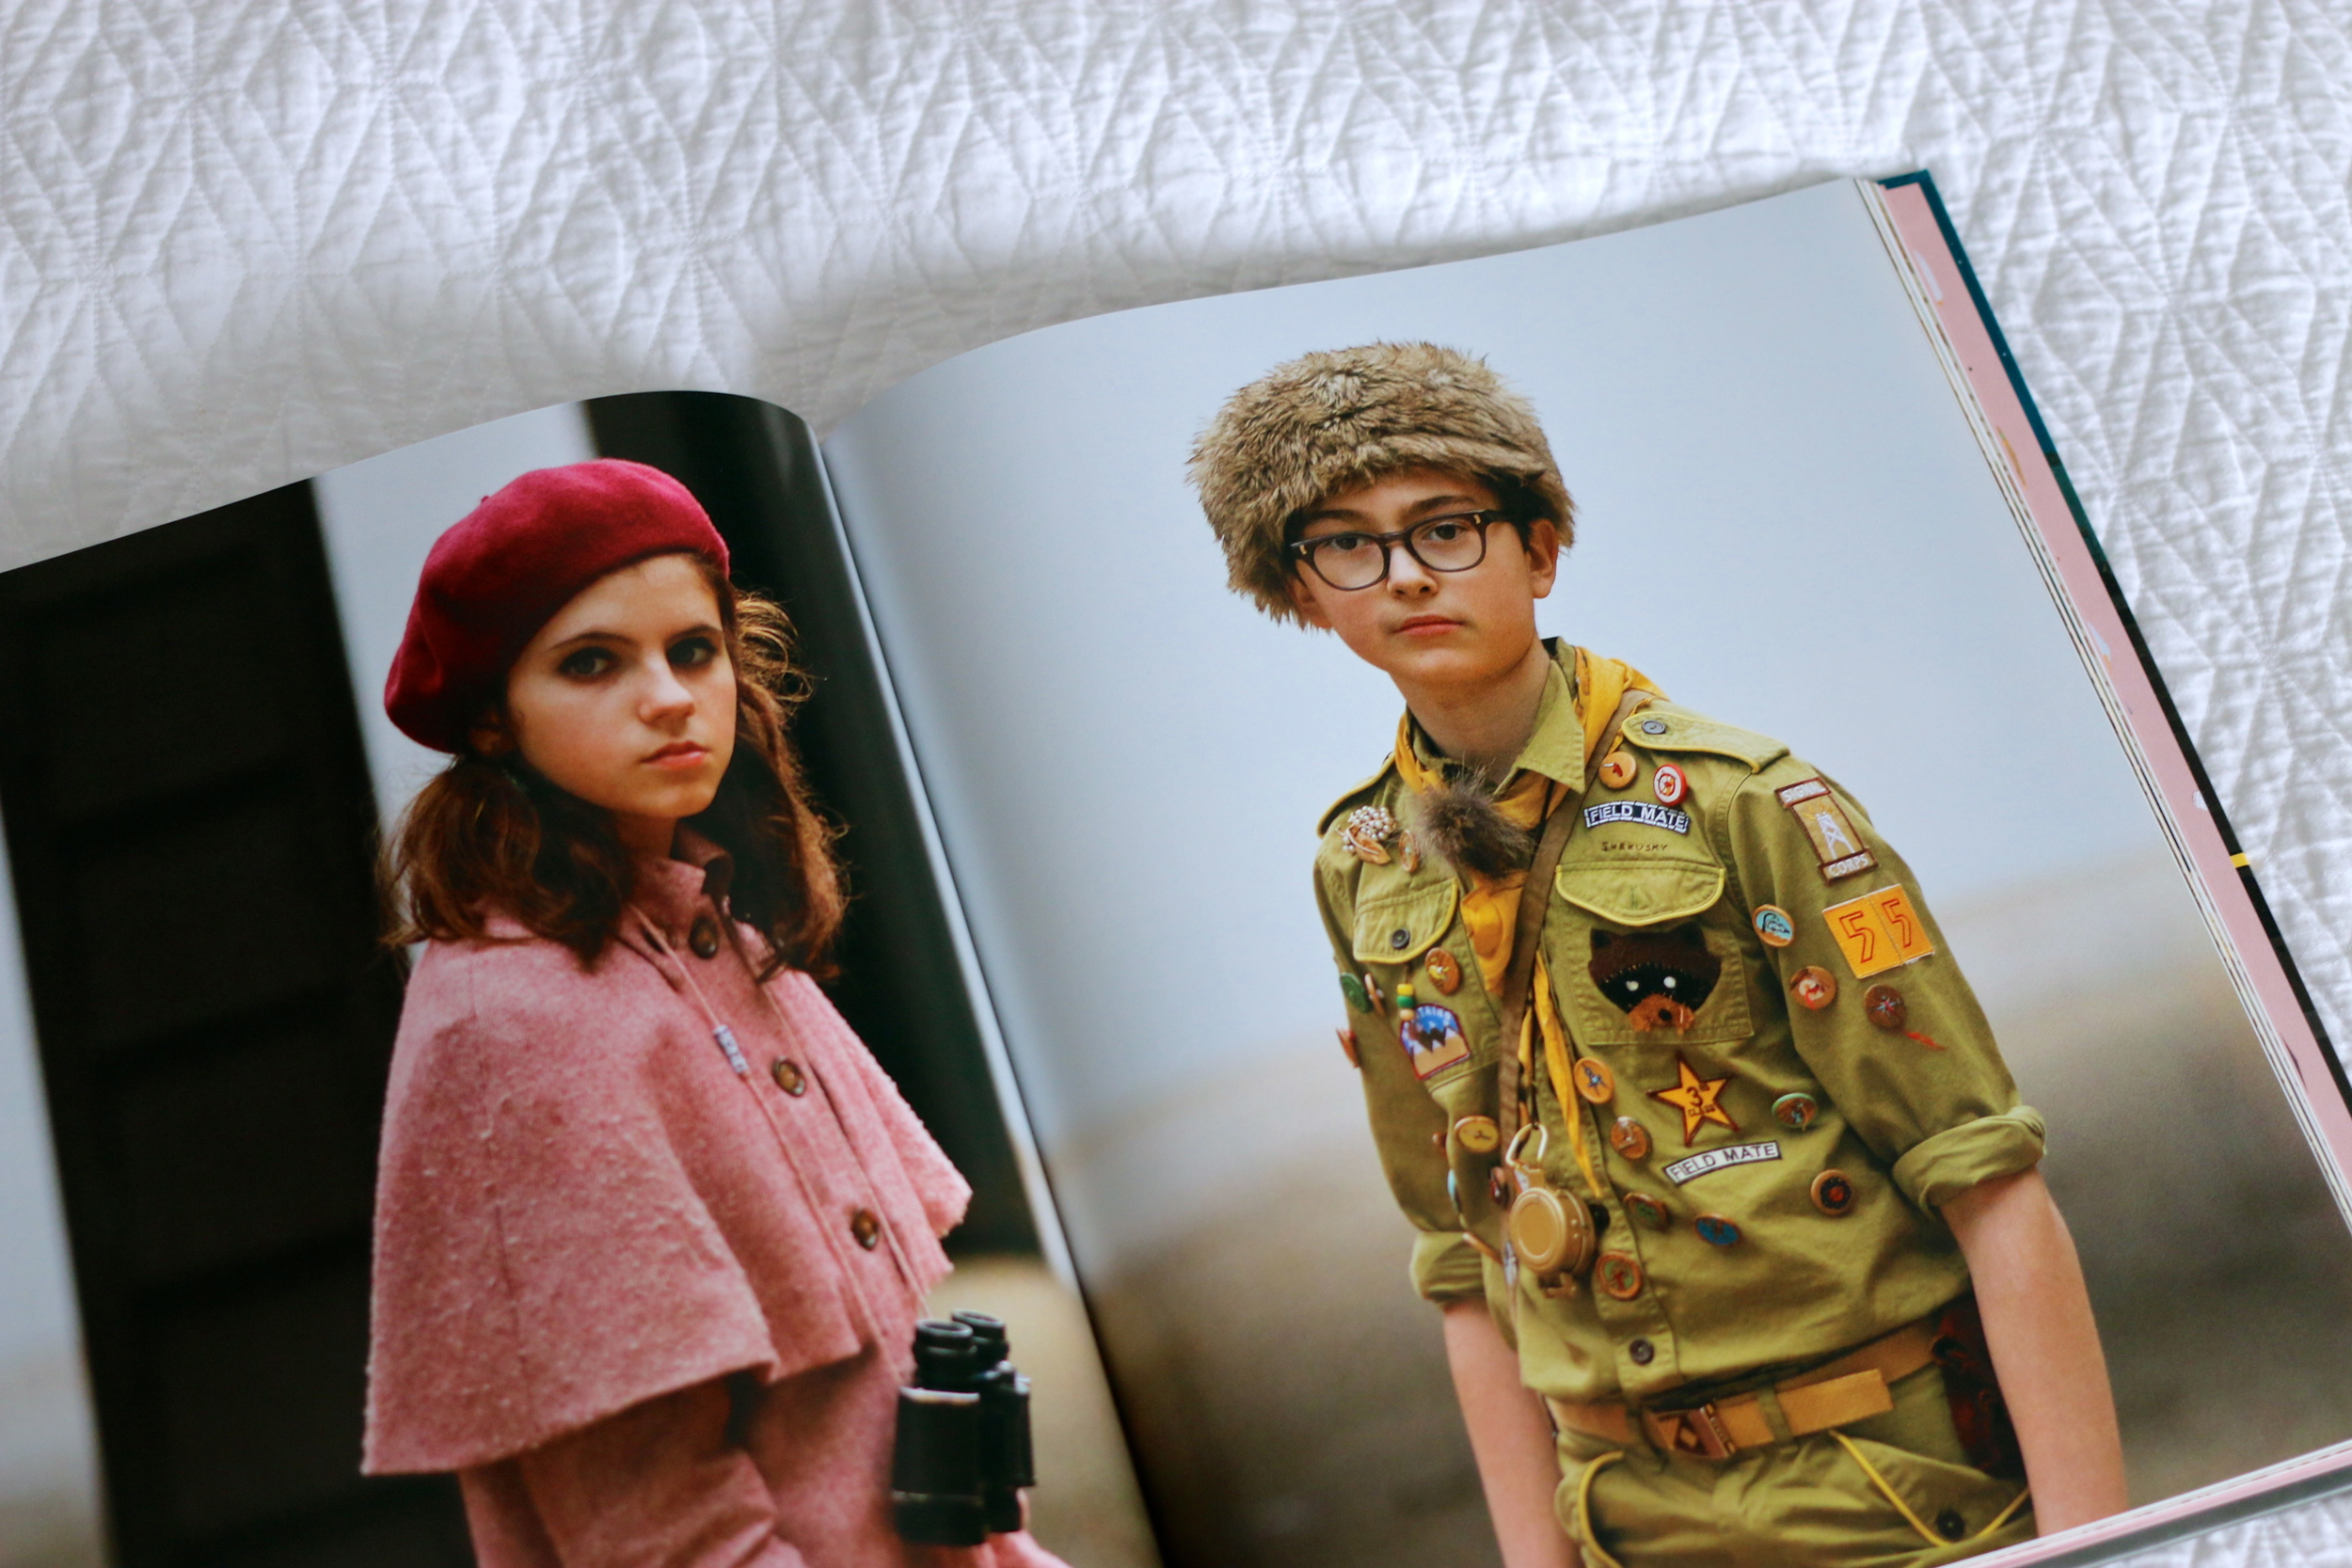 The Wes Anderson Collection Book Moonrise Kingdom portraits on ourcitylights